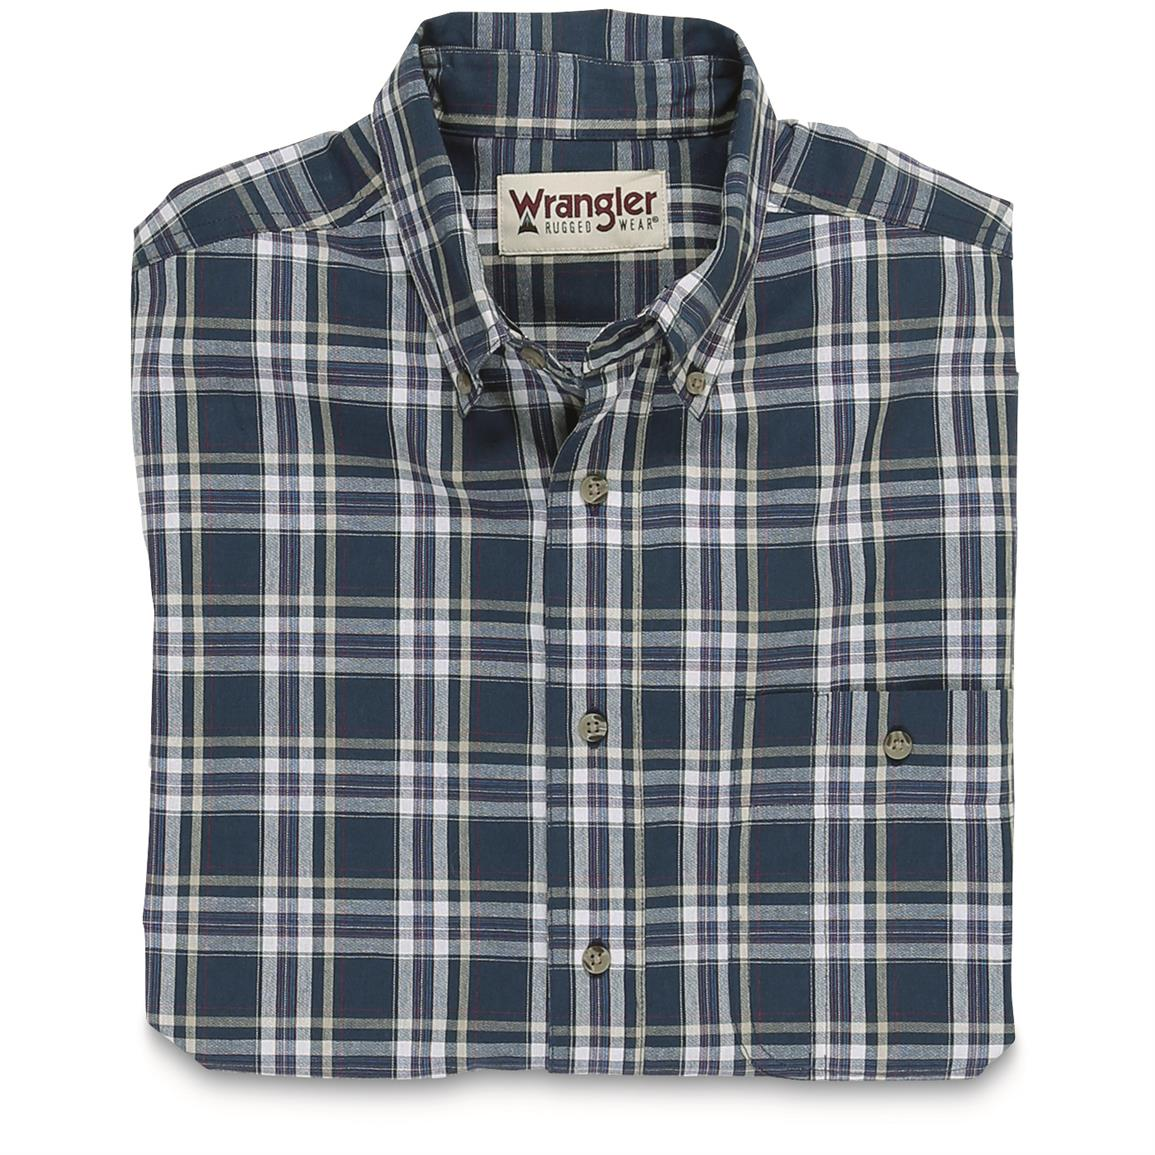 Wrangler Men's Blue Ridge Short Sleeve Plaid Shirt, Blue